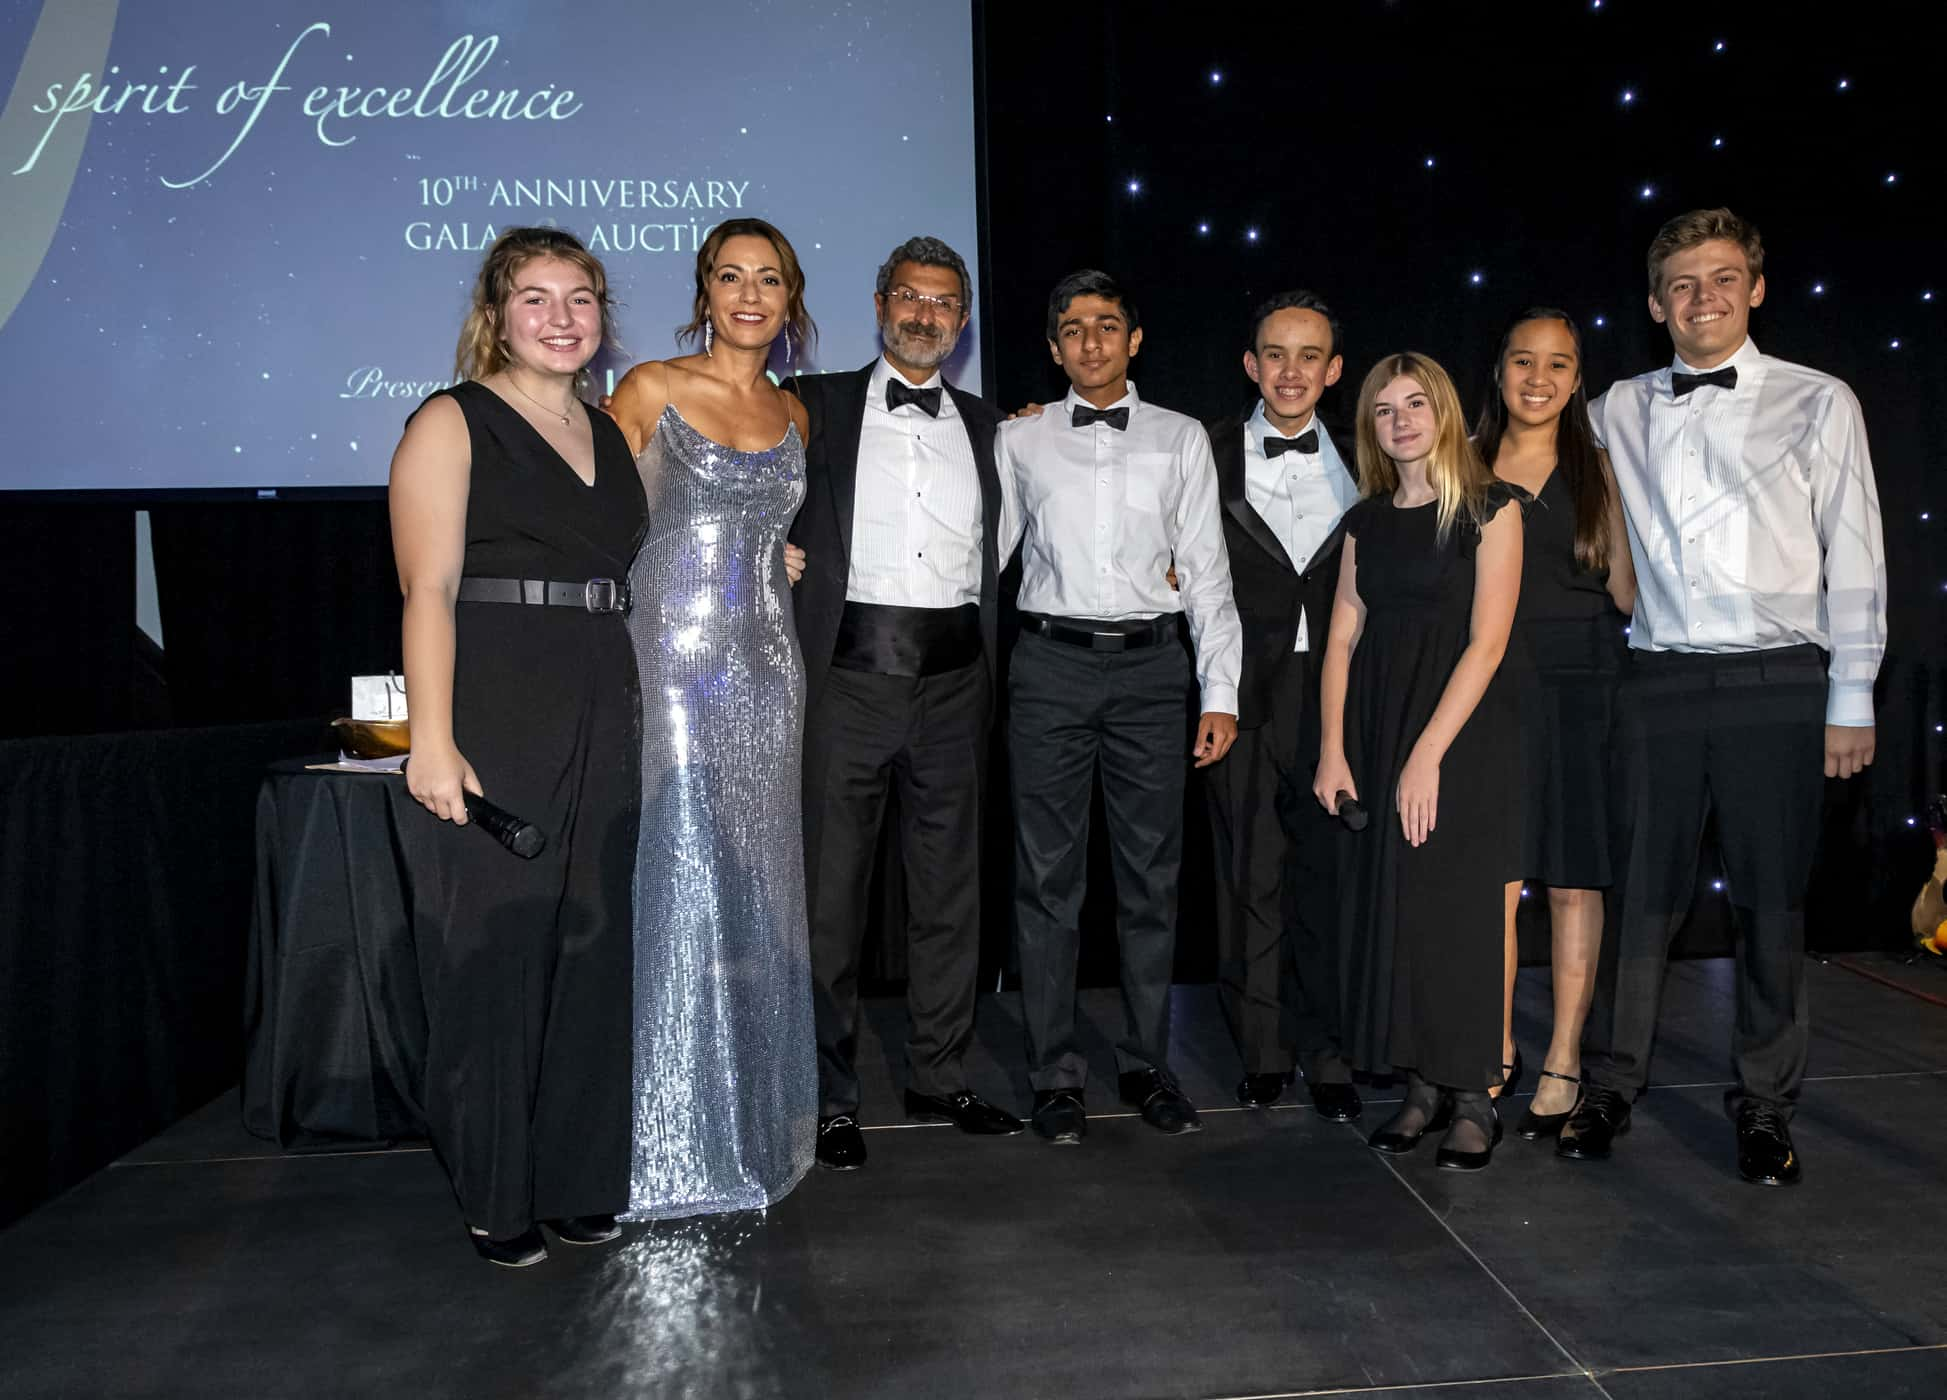 IPSF RAISES A RECORD $1.8 MILLION AT GALA